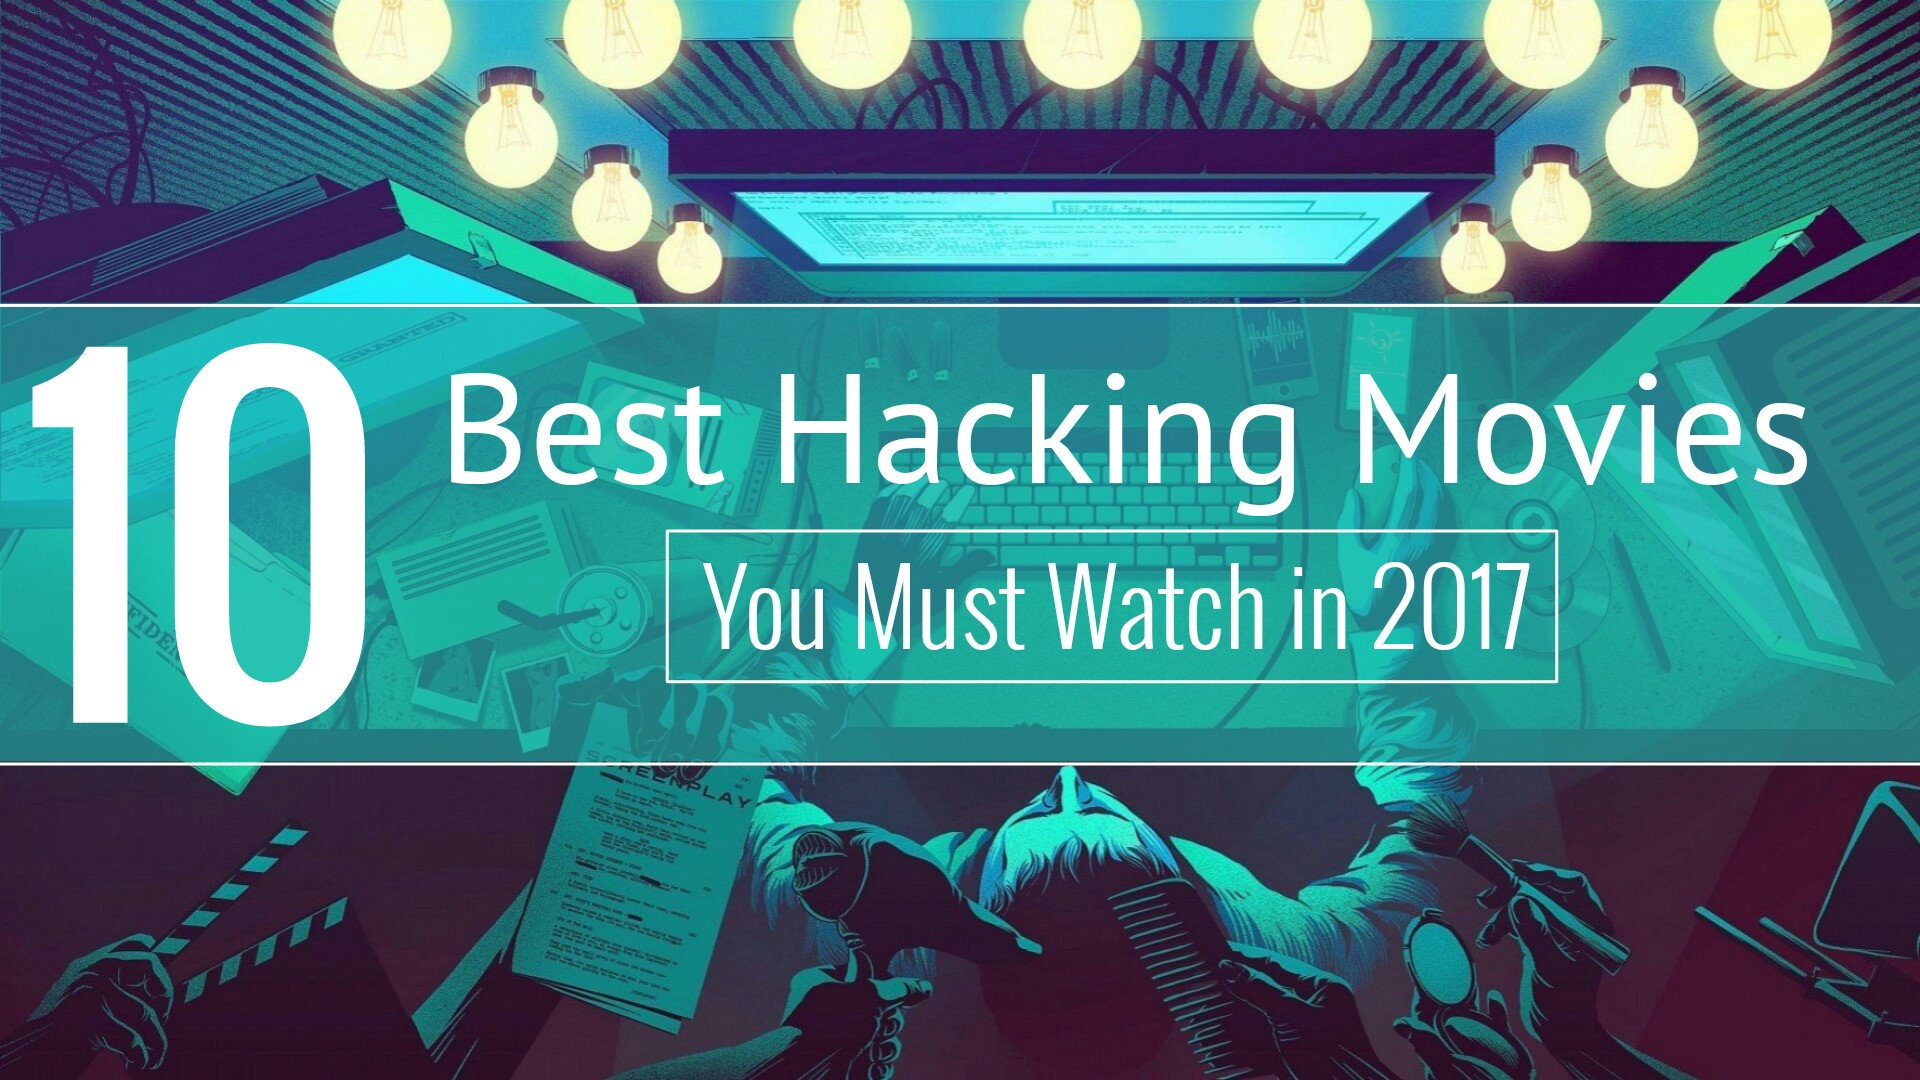 10 Best Hacking Movies You Must Watch in 2017